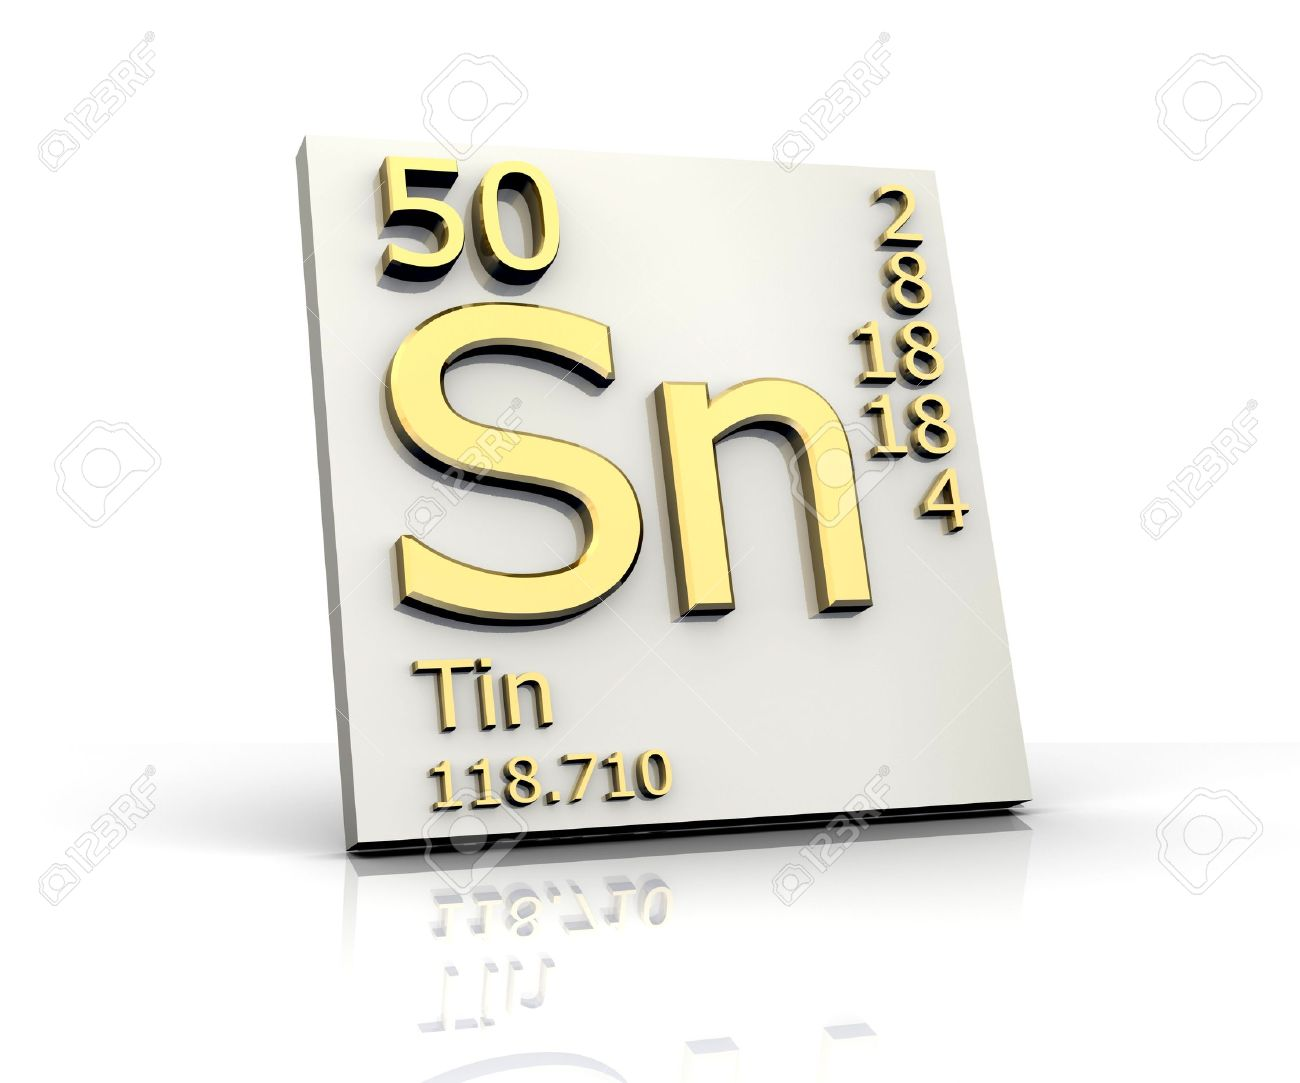 Tin form periodic table of elements stock photo picture and royalty stock photo tin form periodic table of elements urtaz Image collections